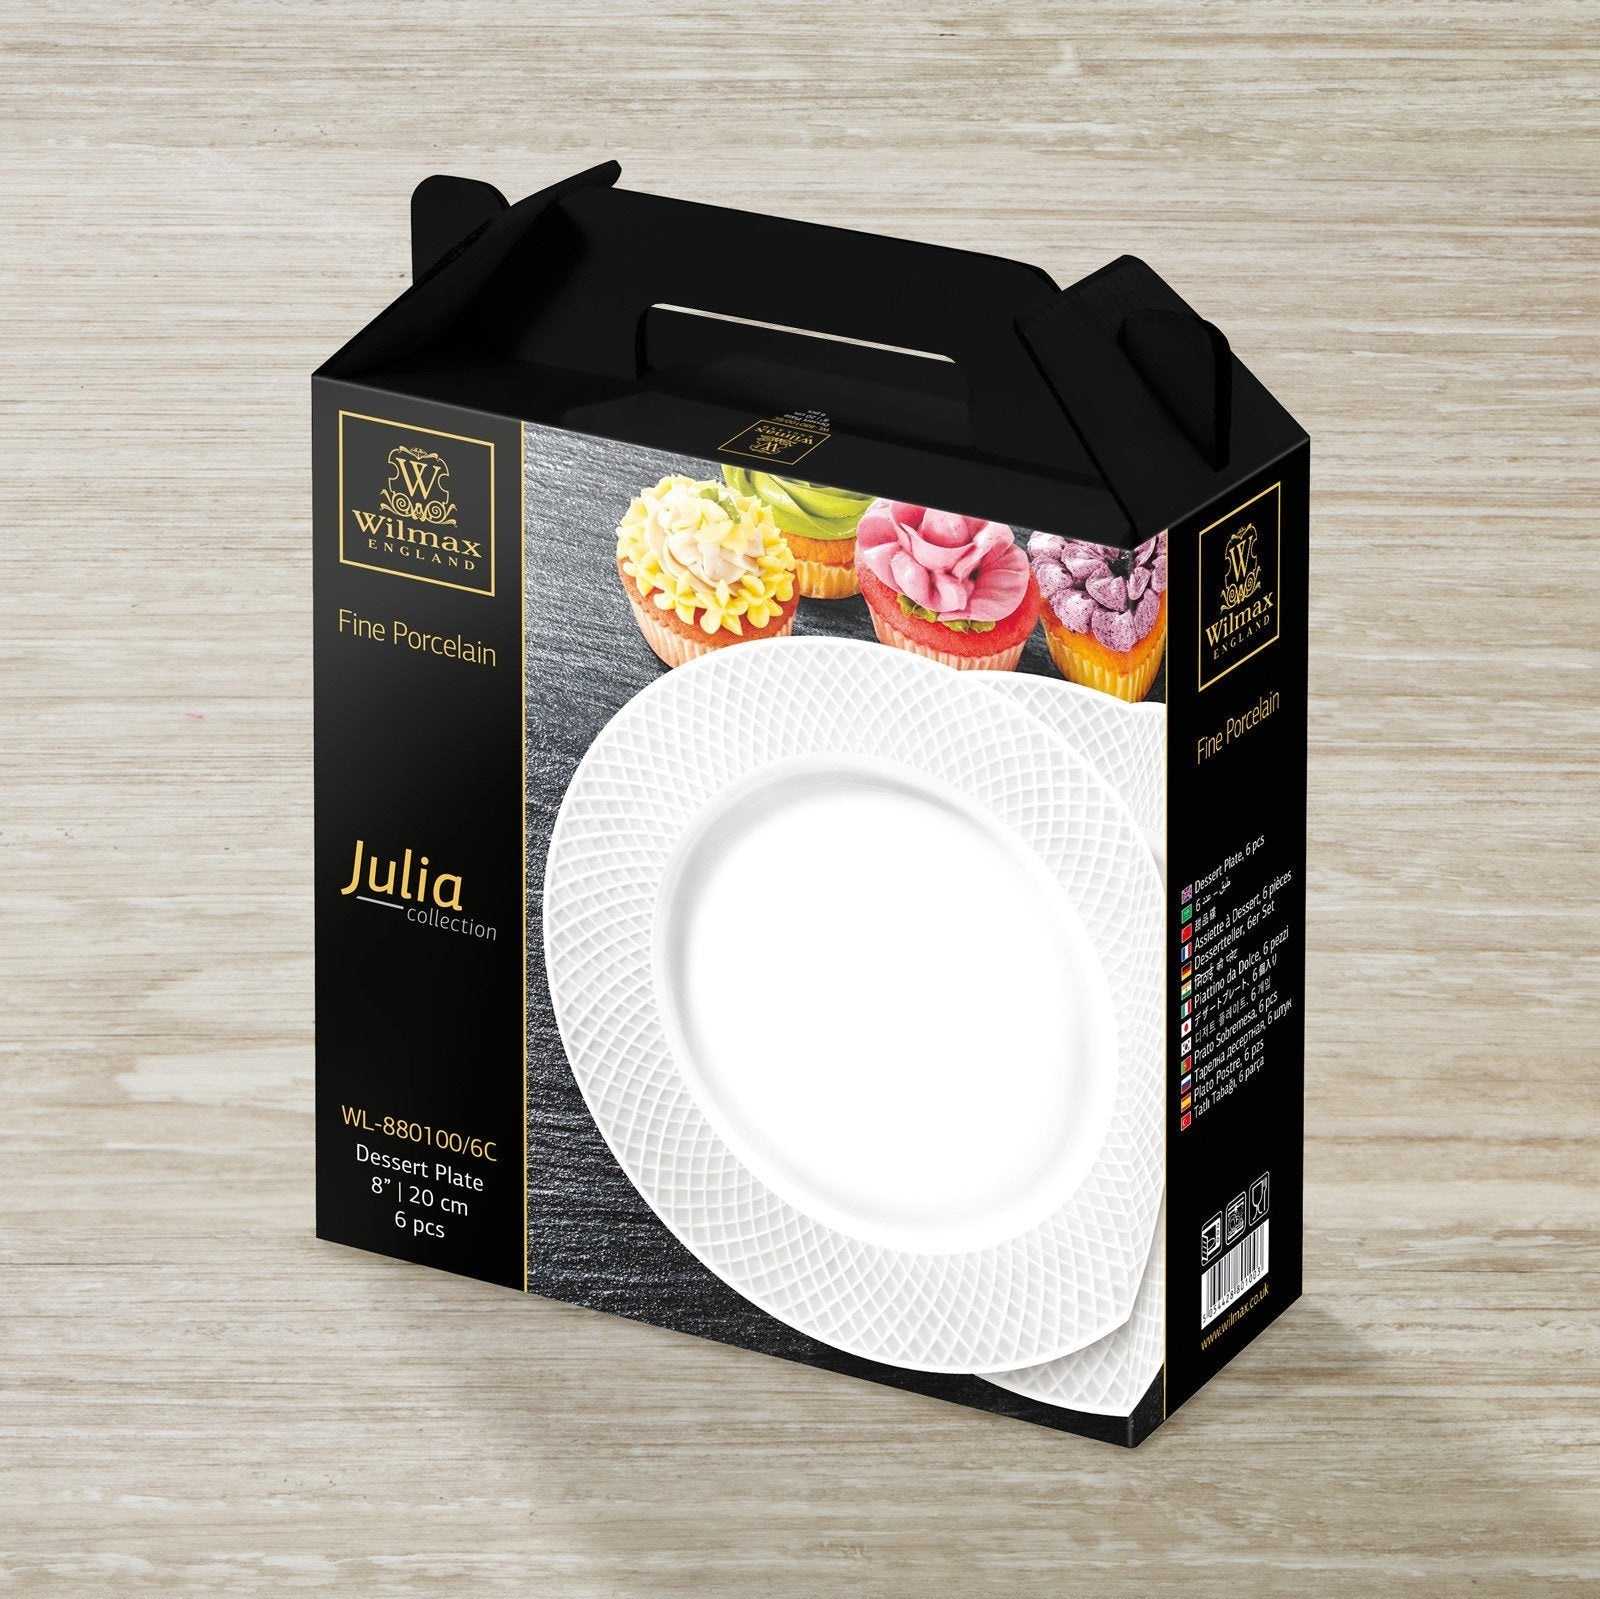 PORCELAIN DESSERT PLATE 8"